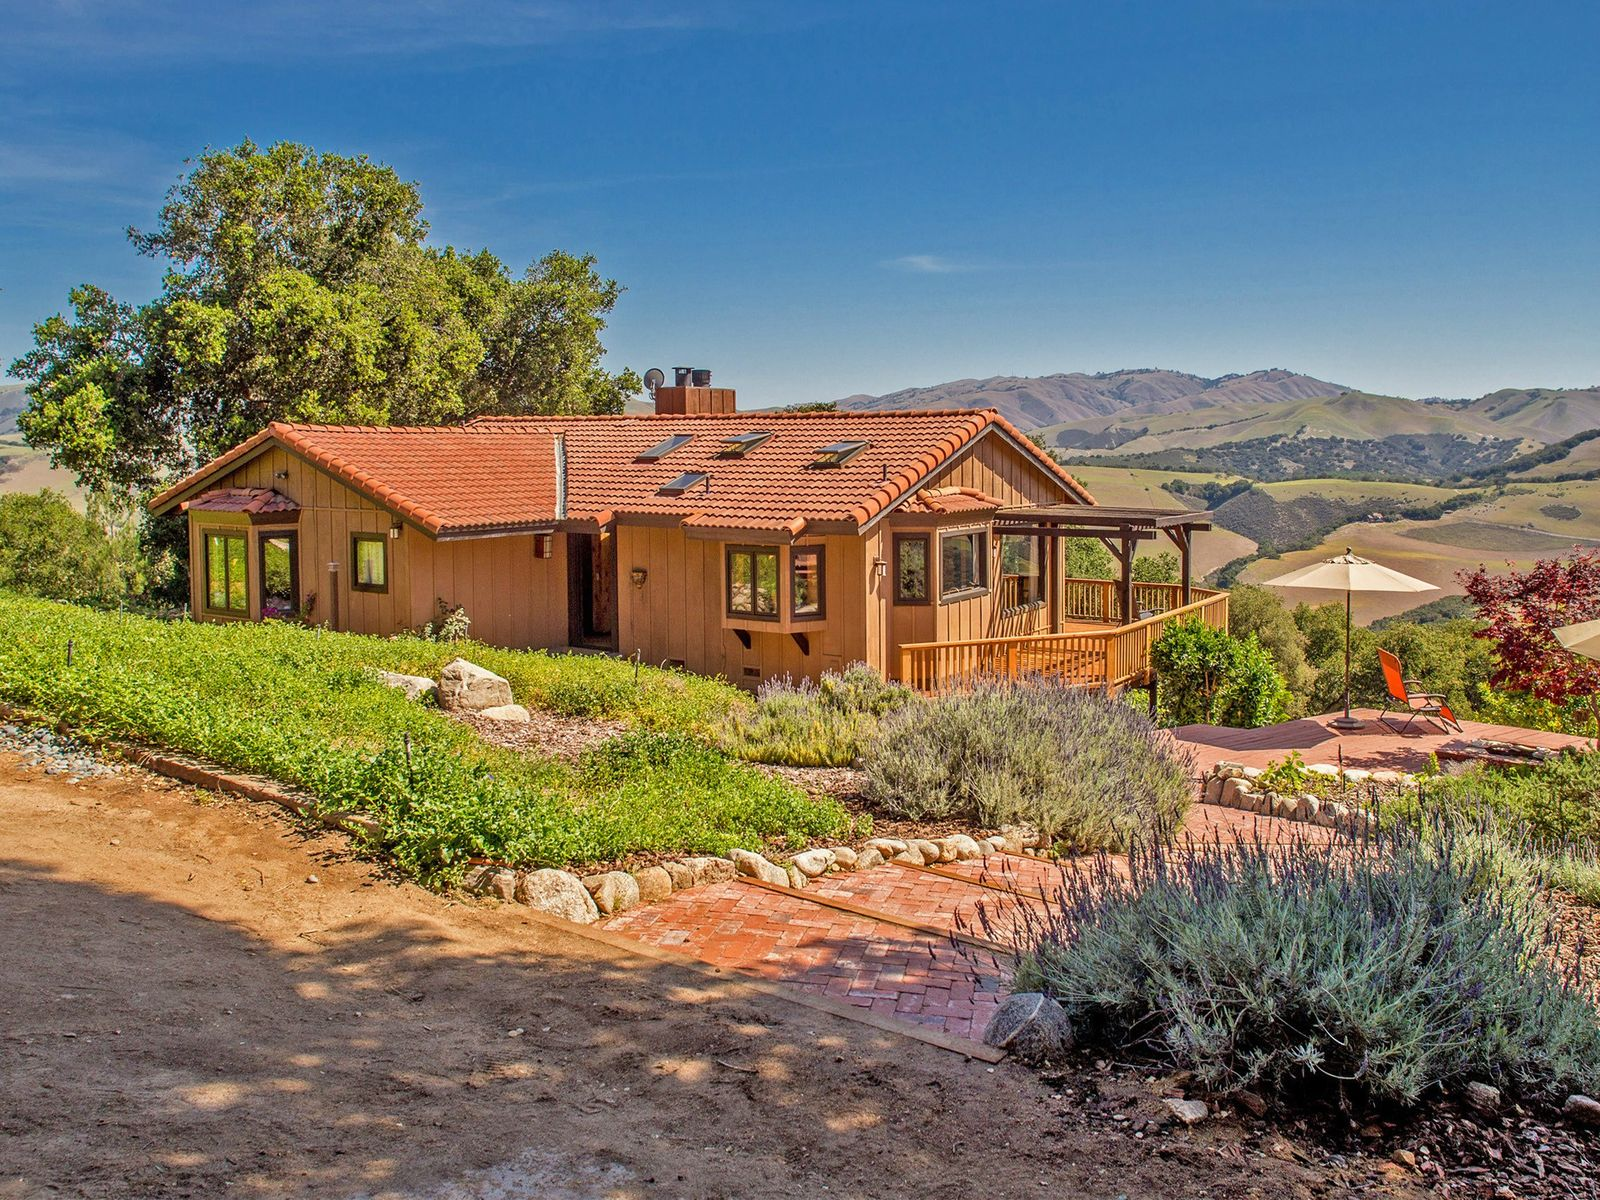 17.7 Acres, Ranch Style Home With Views, Carmel Valley CA Single Family Home - Monterey Real Estate